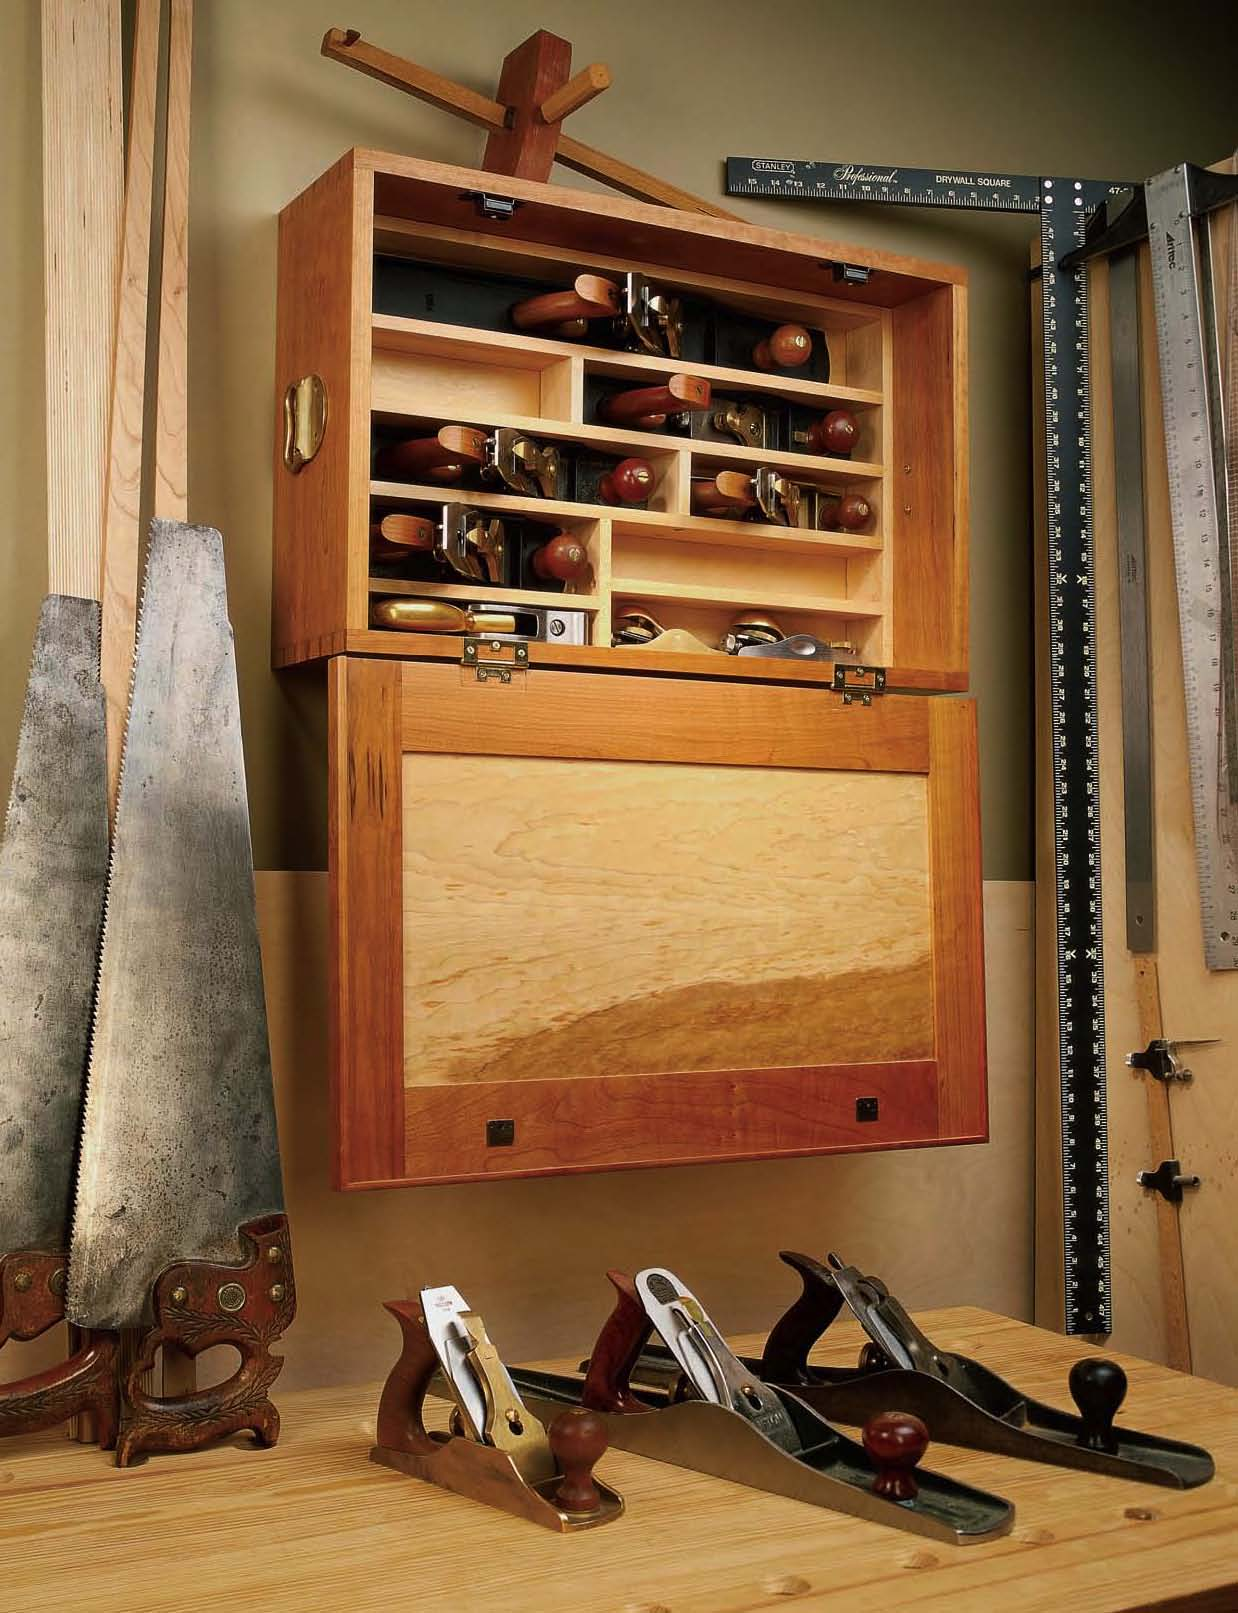 The 100 Best Shelving Amp Storage Projects Popular